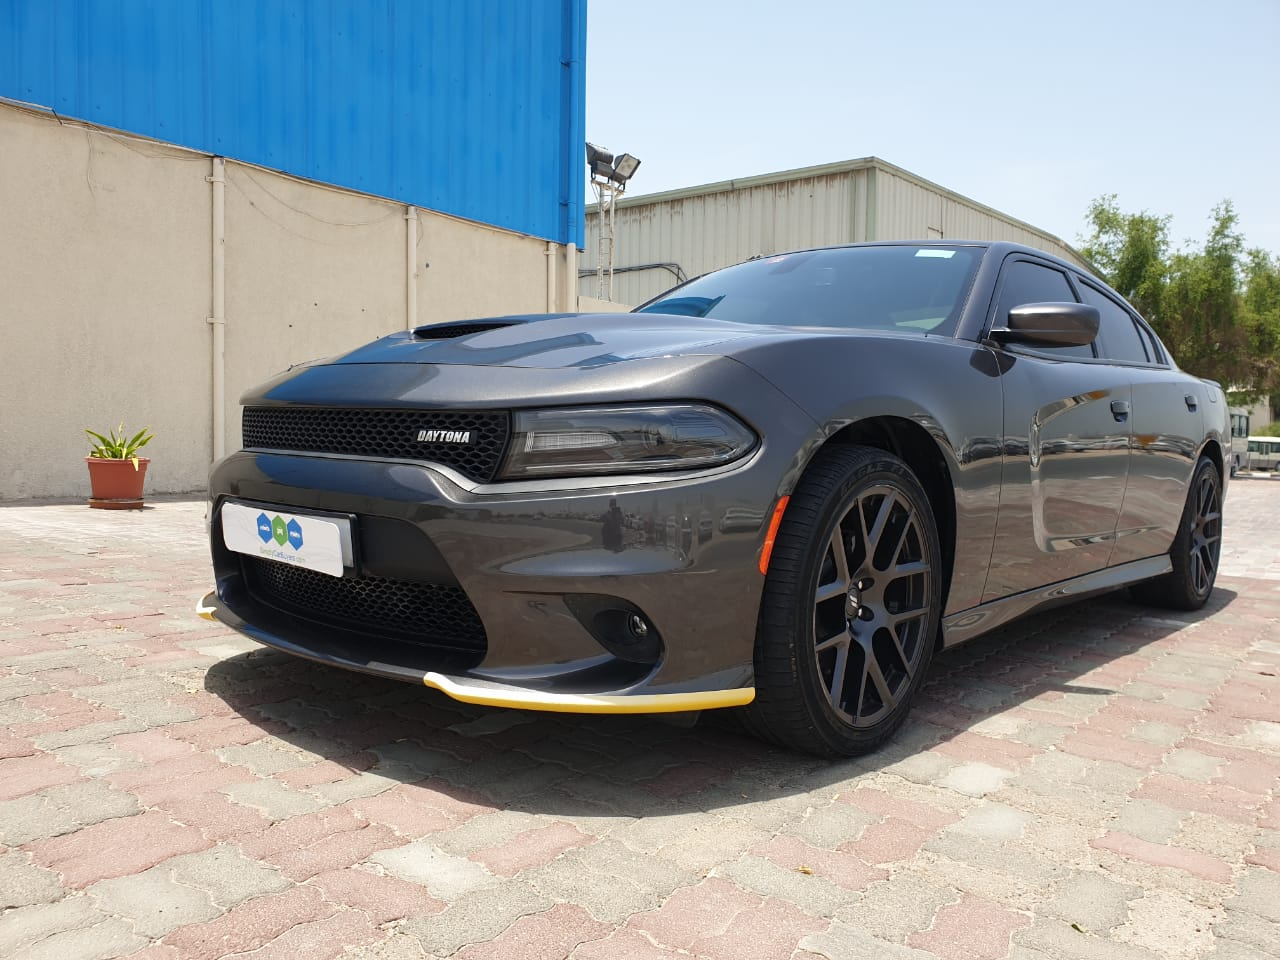 Used Dodge Charger 5.7 RT 2019 For Sale In Dubai